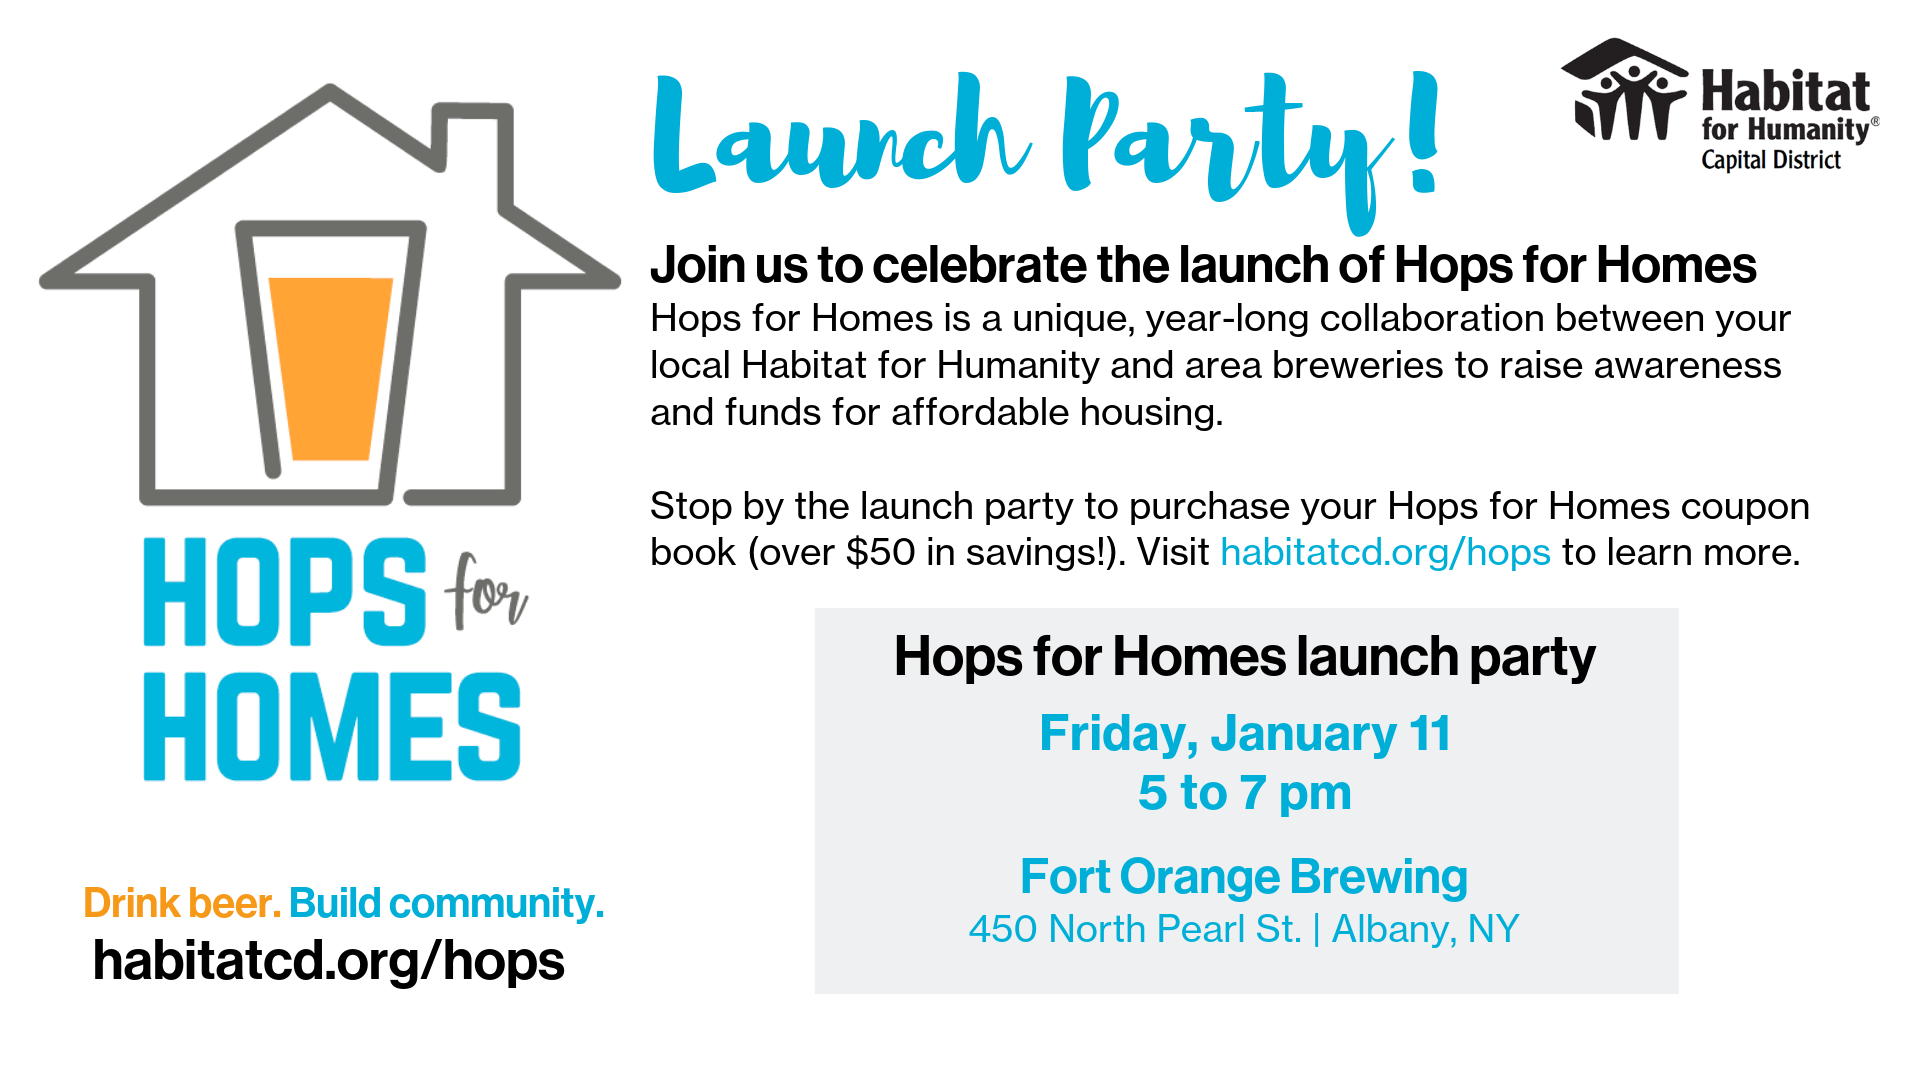 hops for homes launch